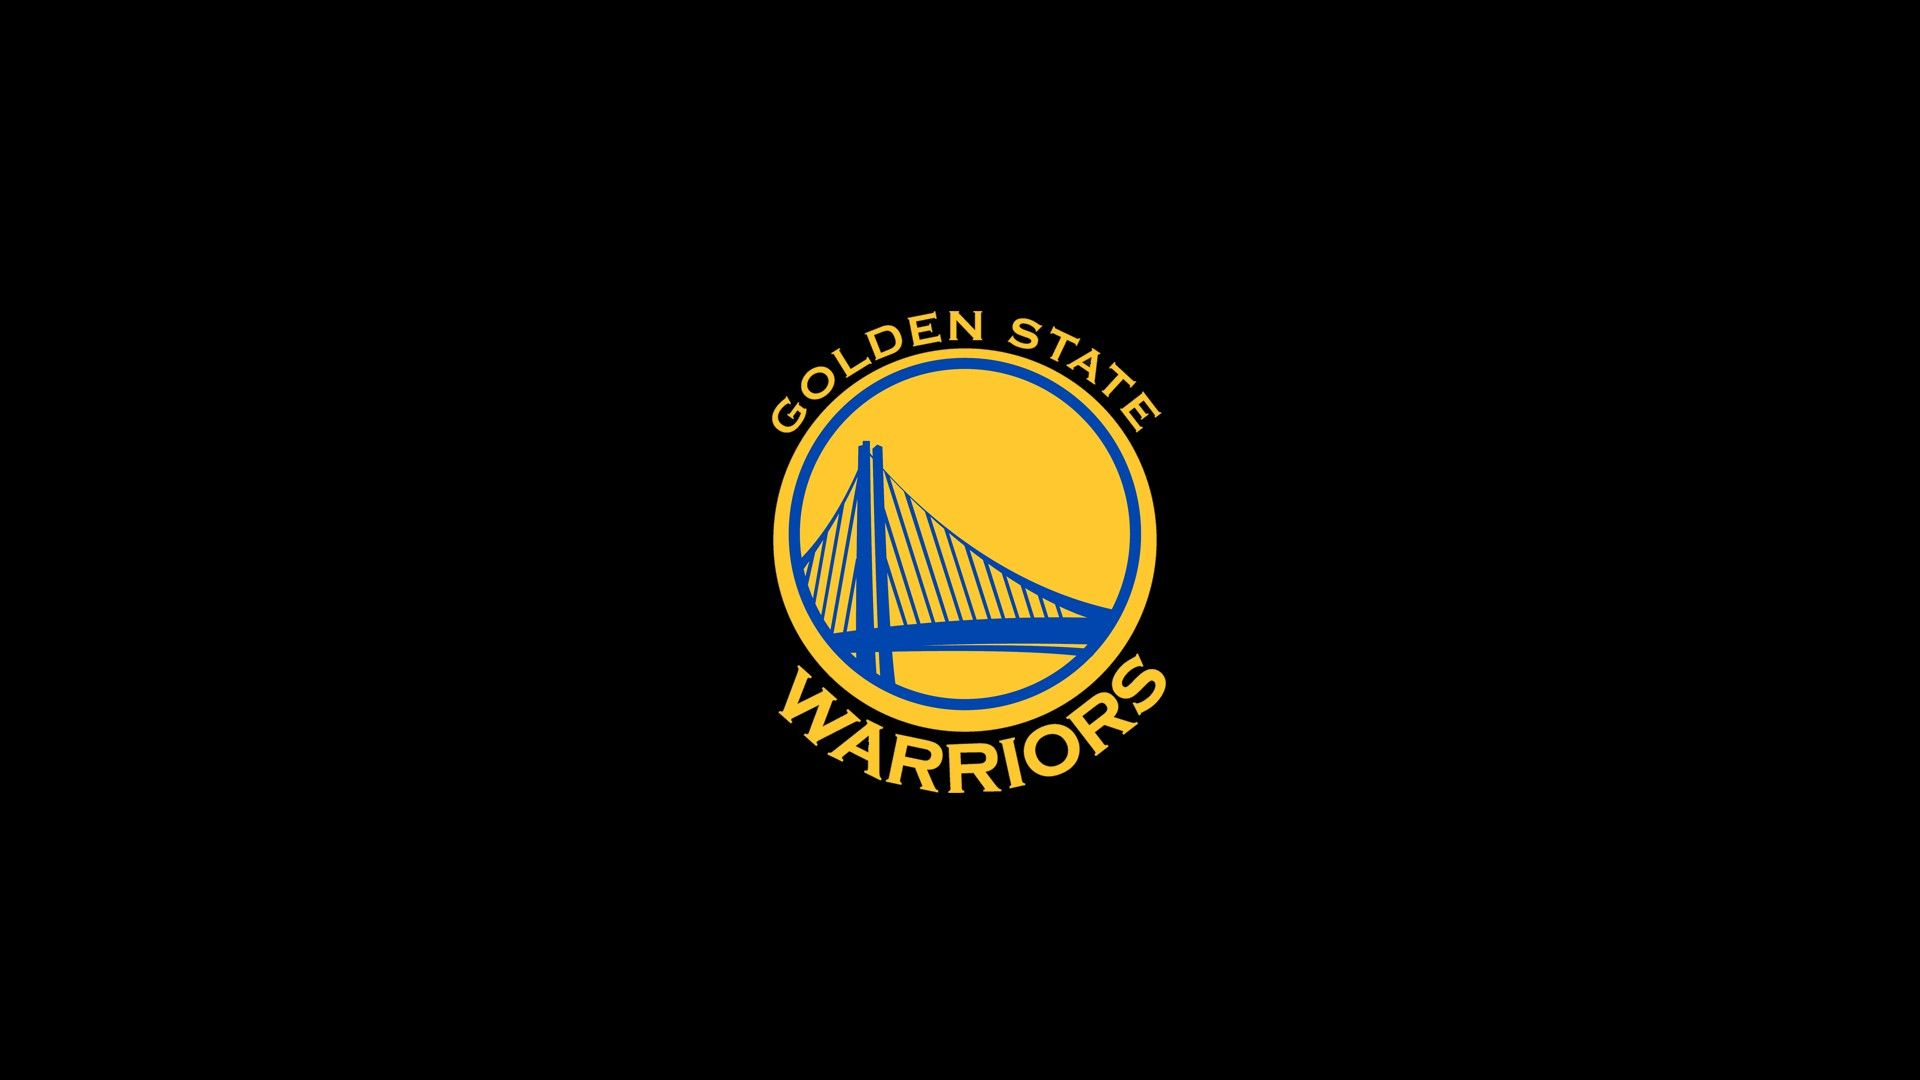 Golden State Warriors Logo Desktop Wallpapers Golden State Warriors Logo Warrior Logo Golden State Warriors